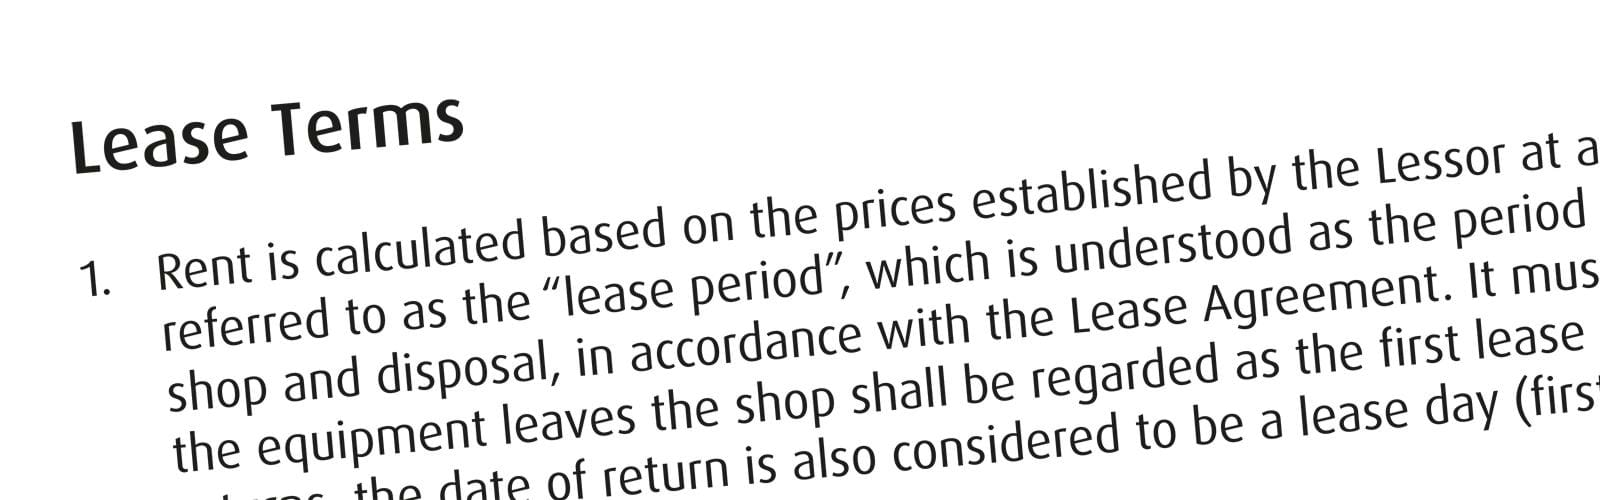 Part of text from Lease Terms